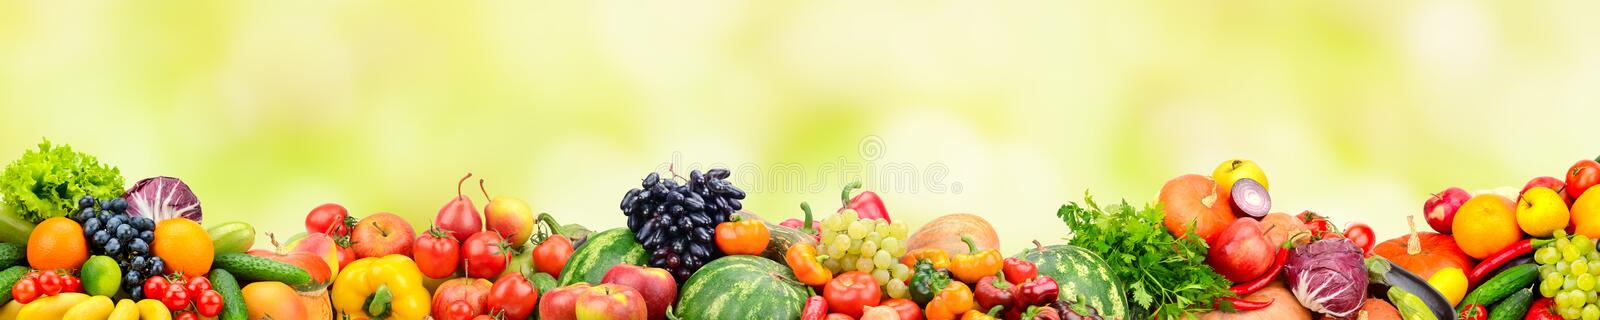 Panoramic collection fresh fruits and vegetables on yellow background. stock illustration